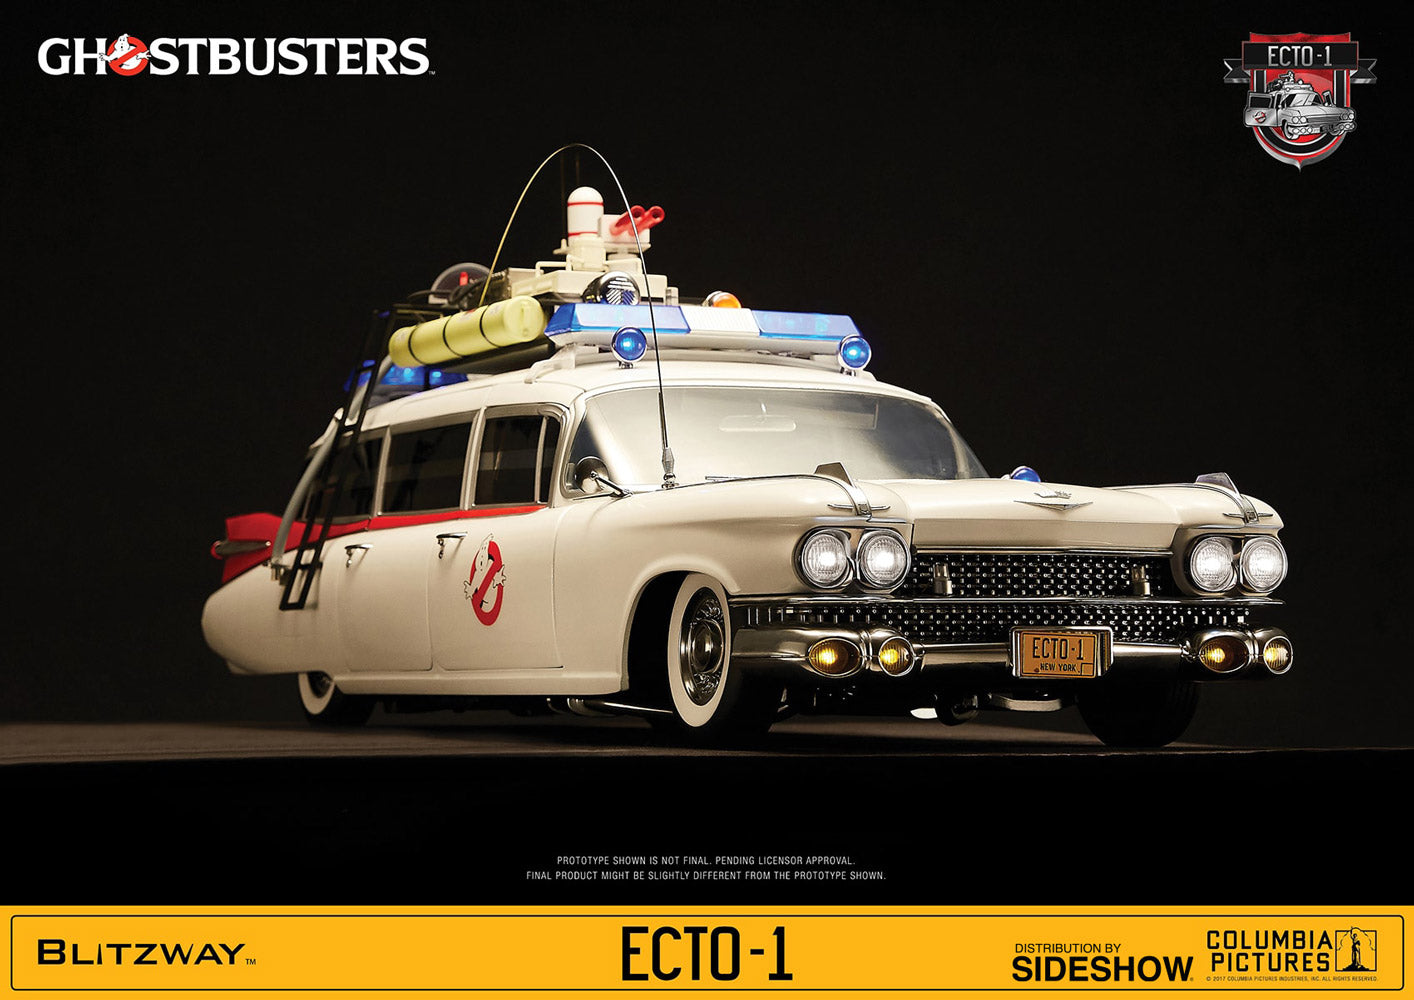 Ghostbusters 1984 Ecto-1 1/6 Scale Vehicle - Collectors Row Inc.